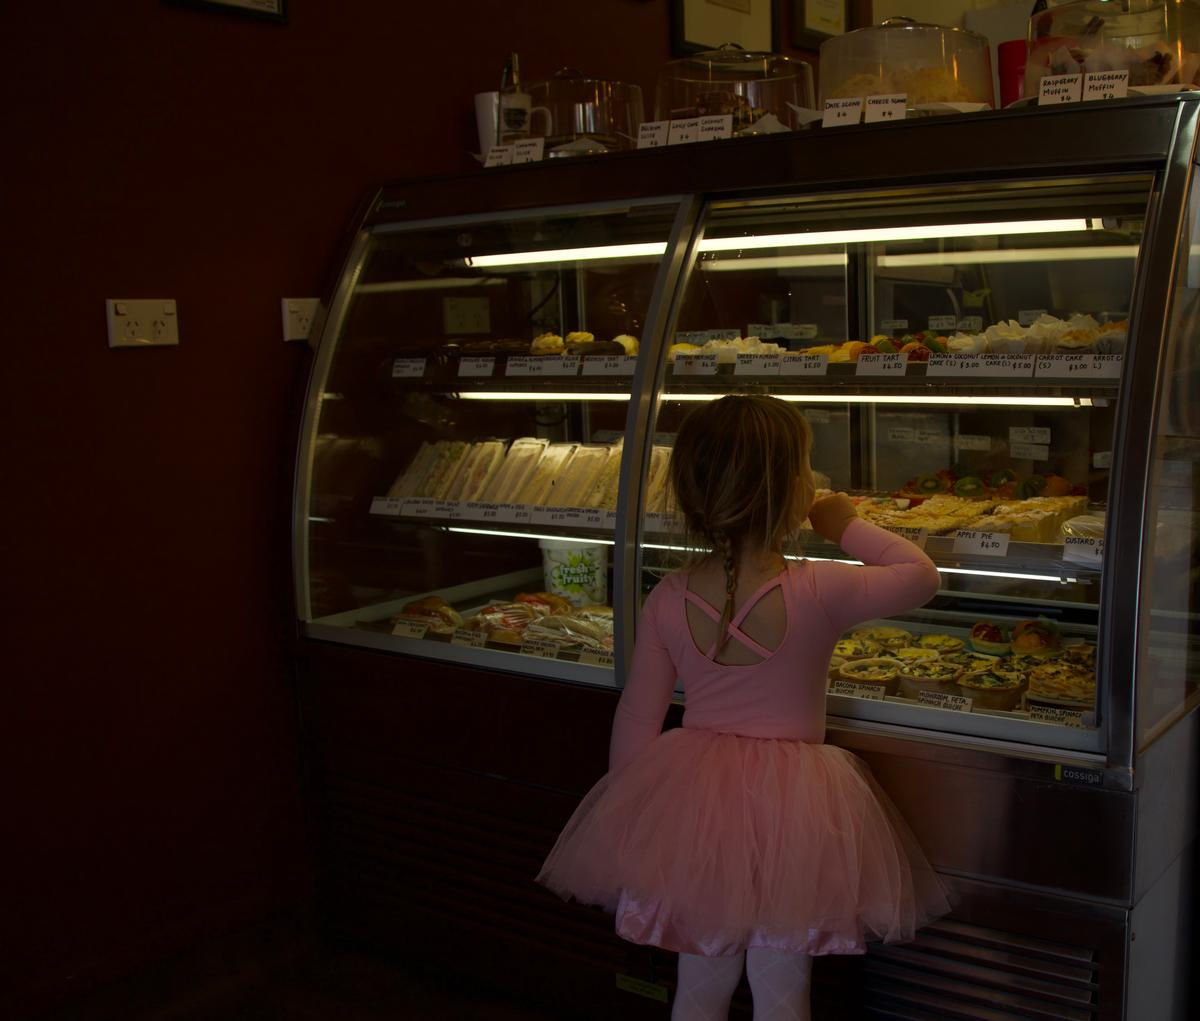 Vidal Rodriguez;After ballet treat